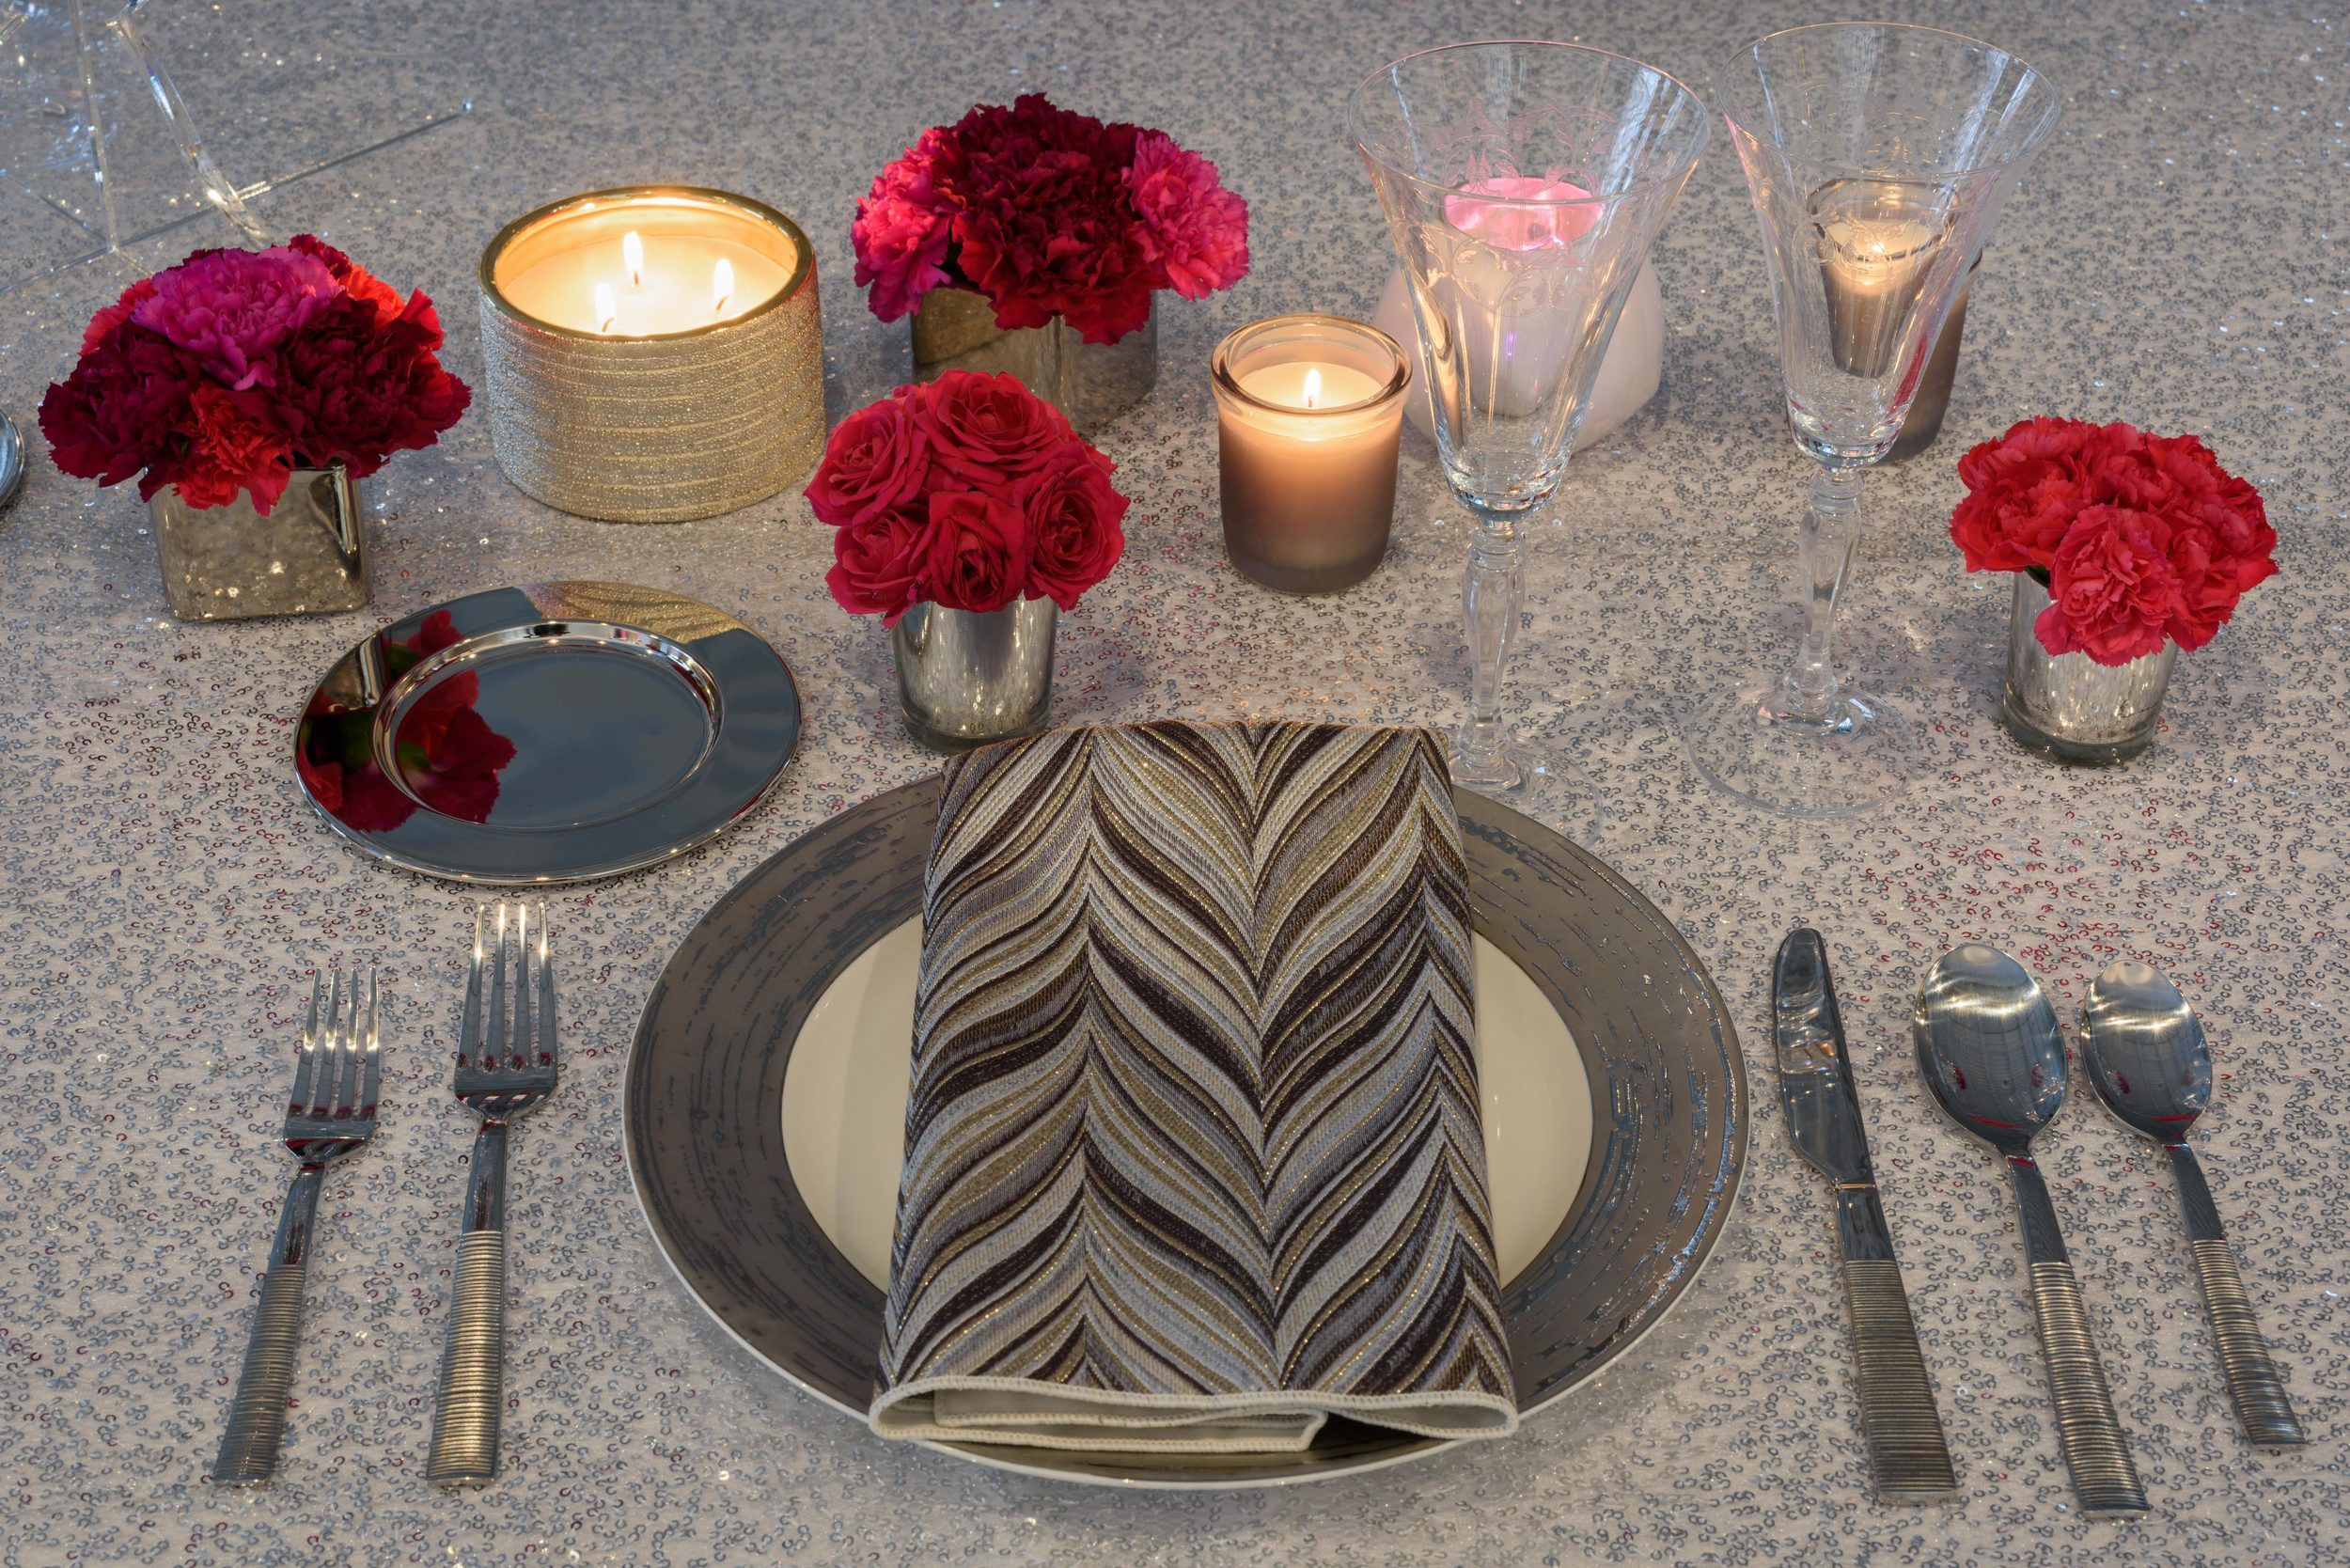 Our favorite new linen napkin from Linen Effects!